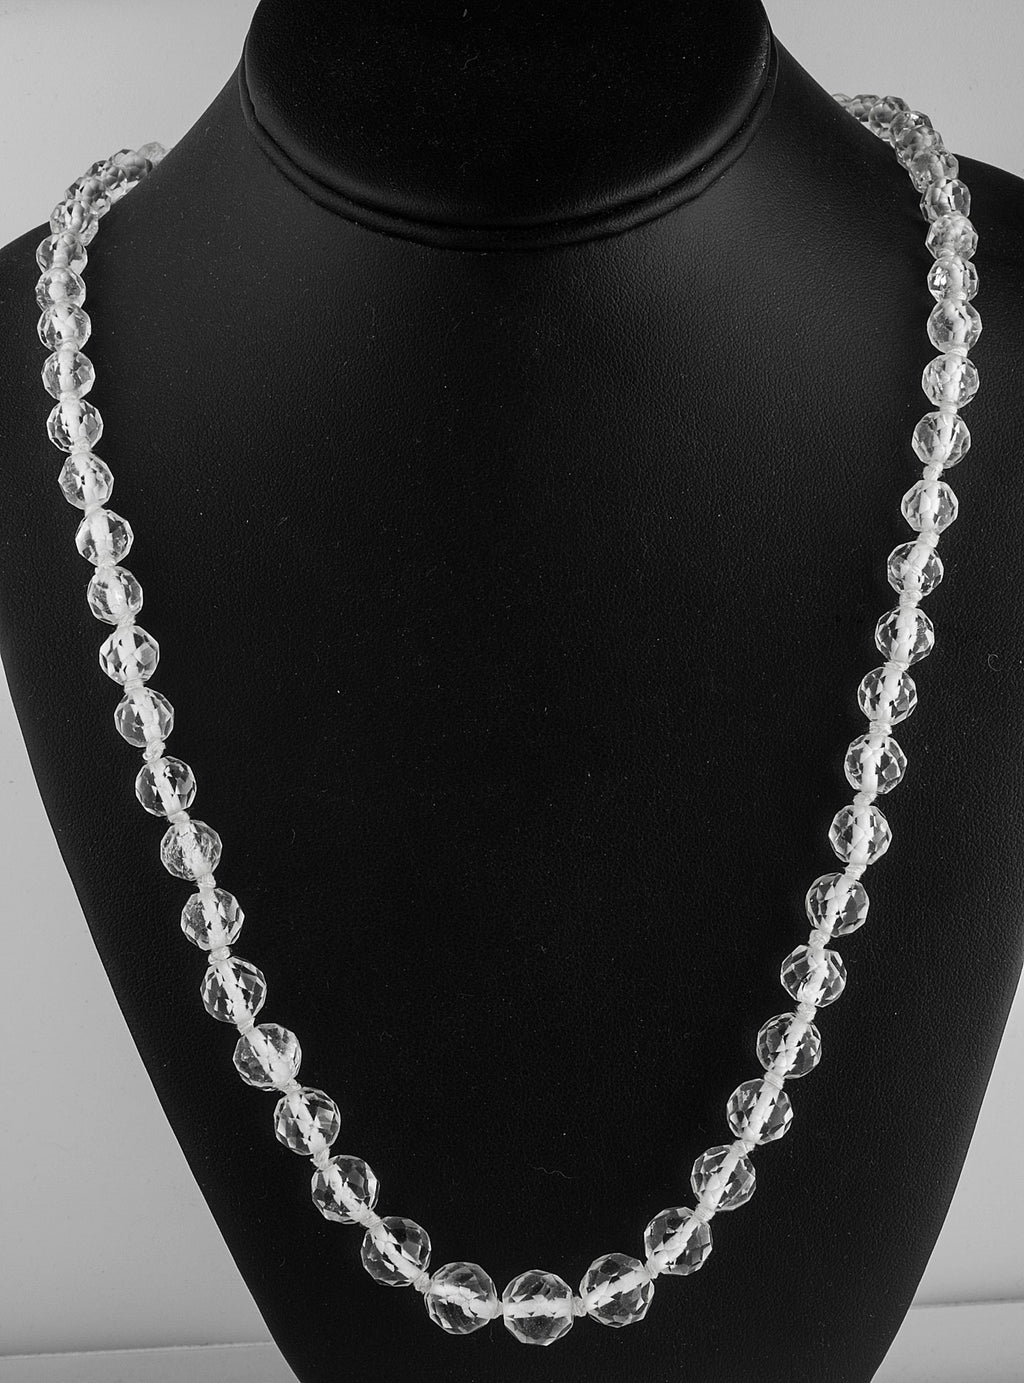 Vintage Art Deco graduated faceted rock crystal bead necklace. nlbd1099